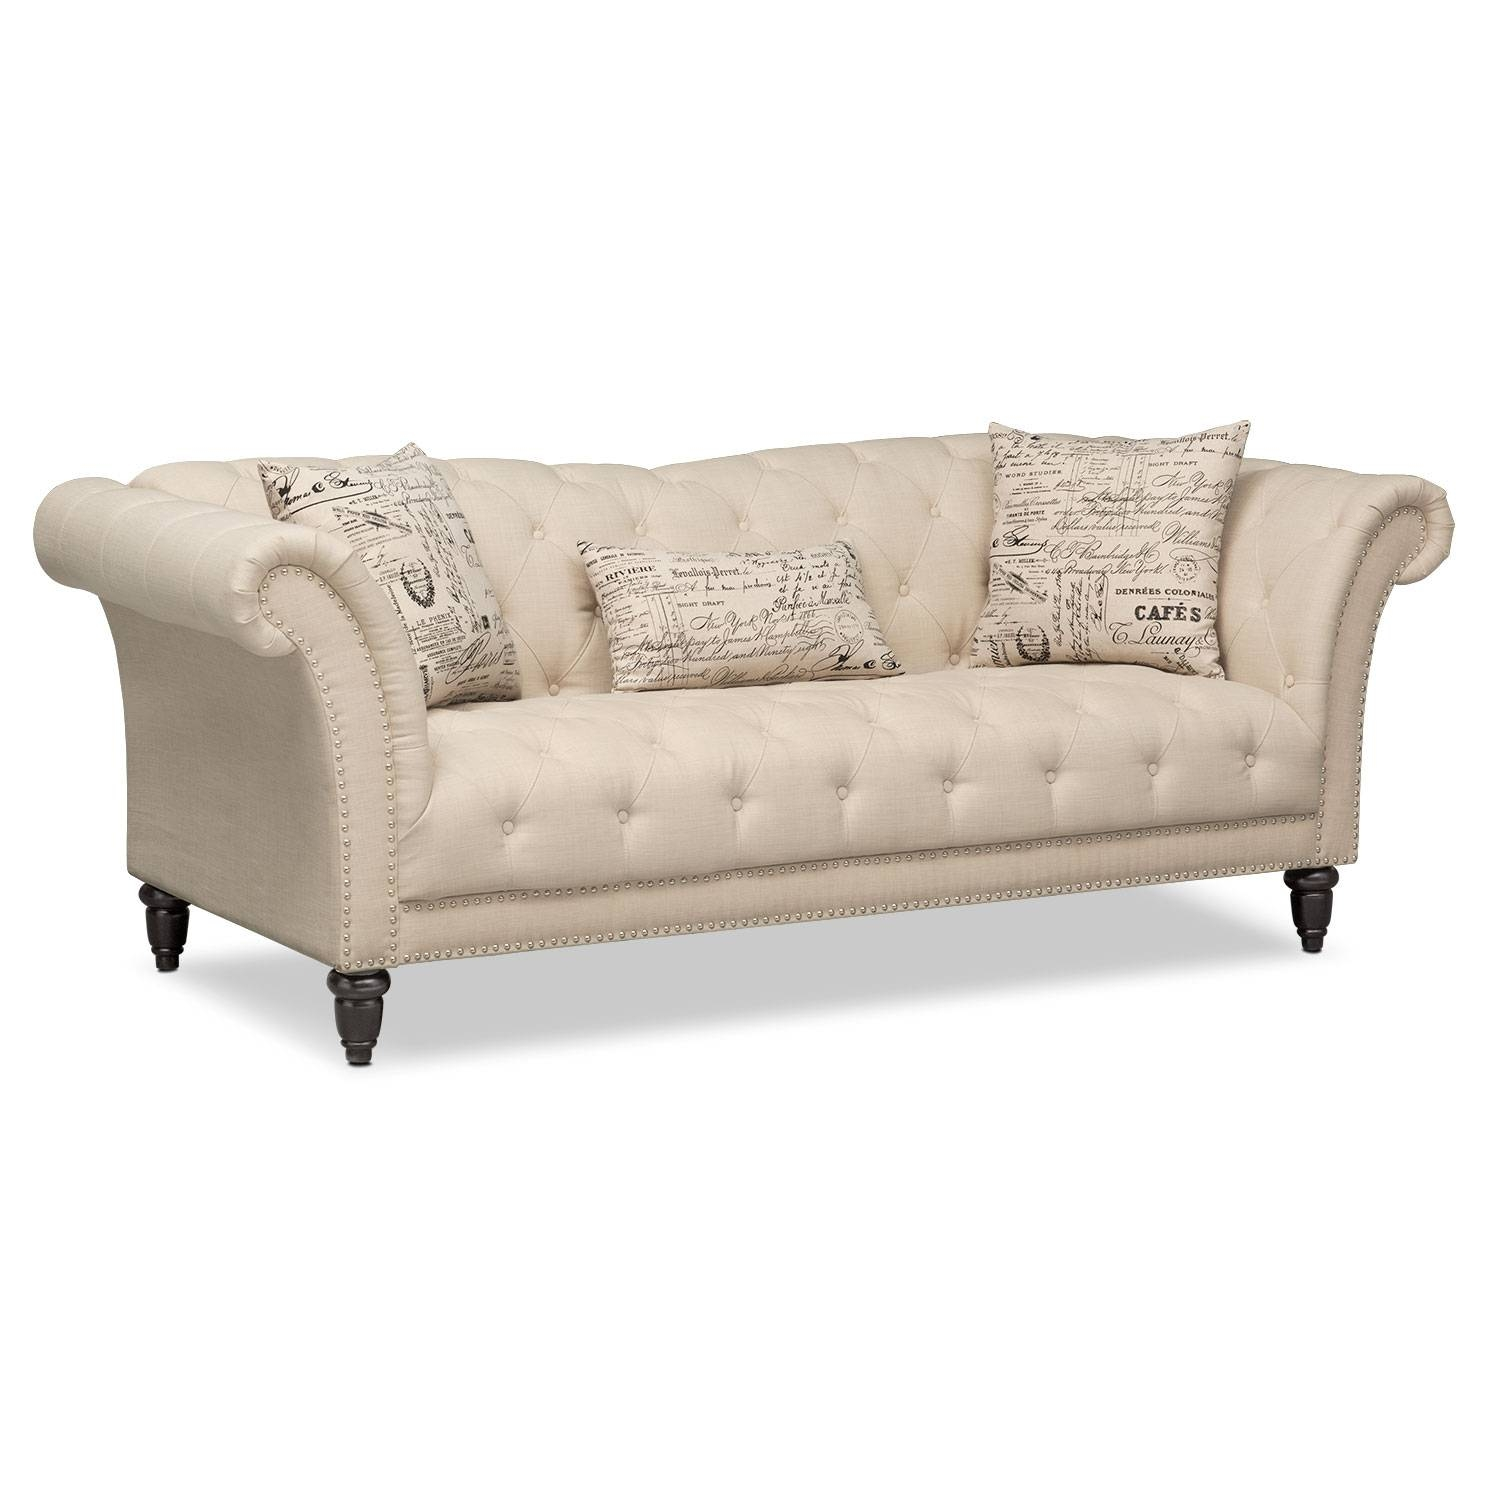 Marisol Sofa   Beige | Value City Furniture With Regard To Beige Sofas (Photo 1 of 15)